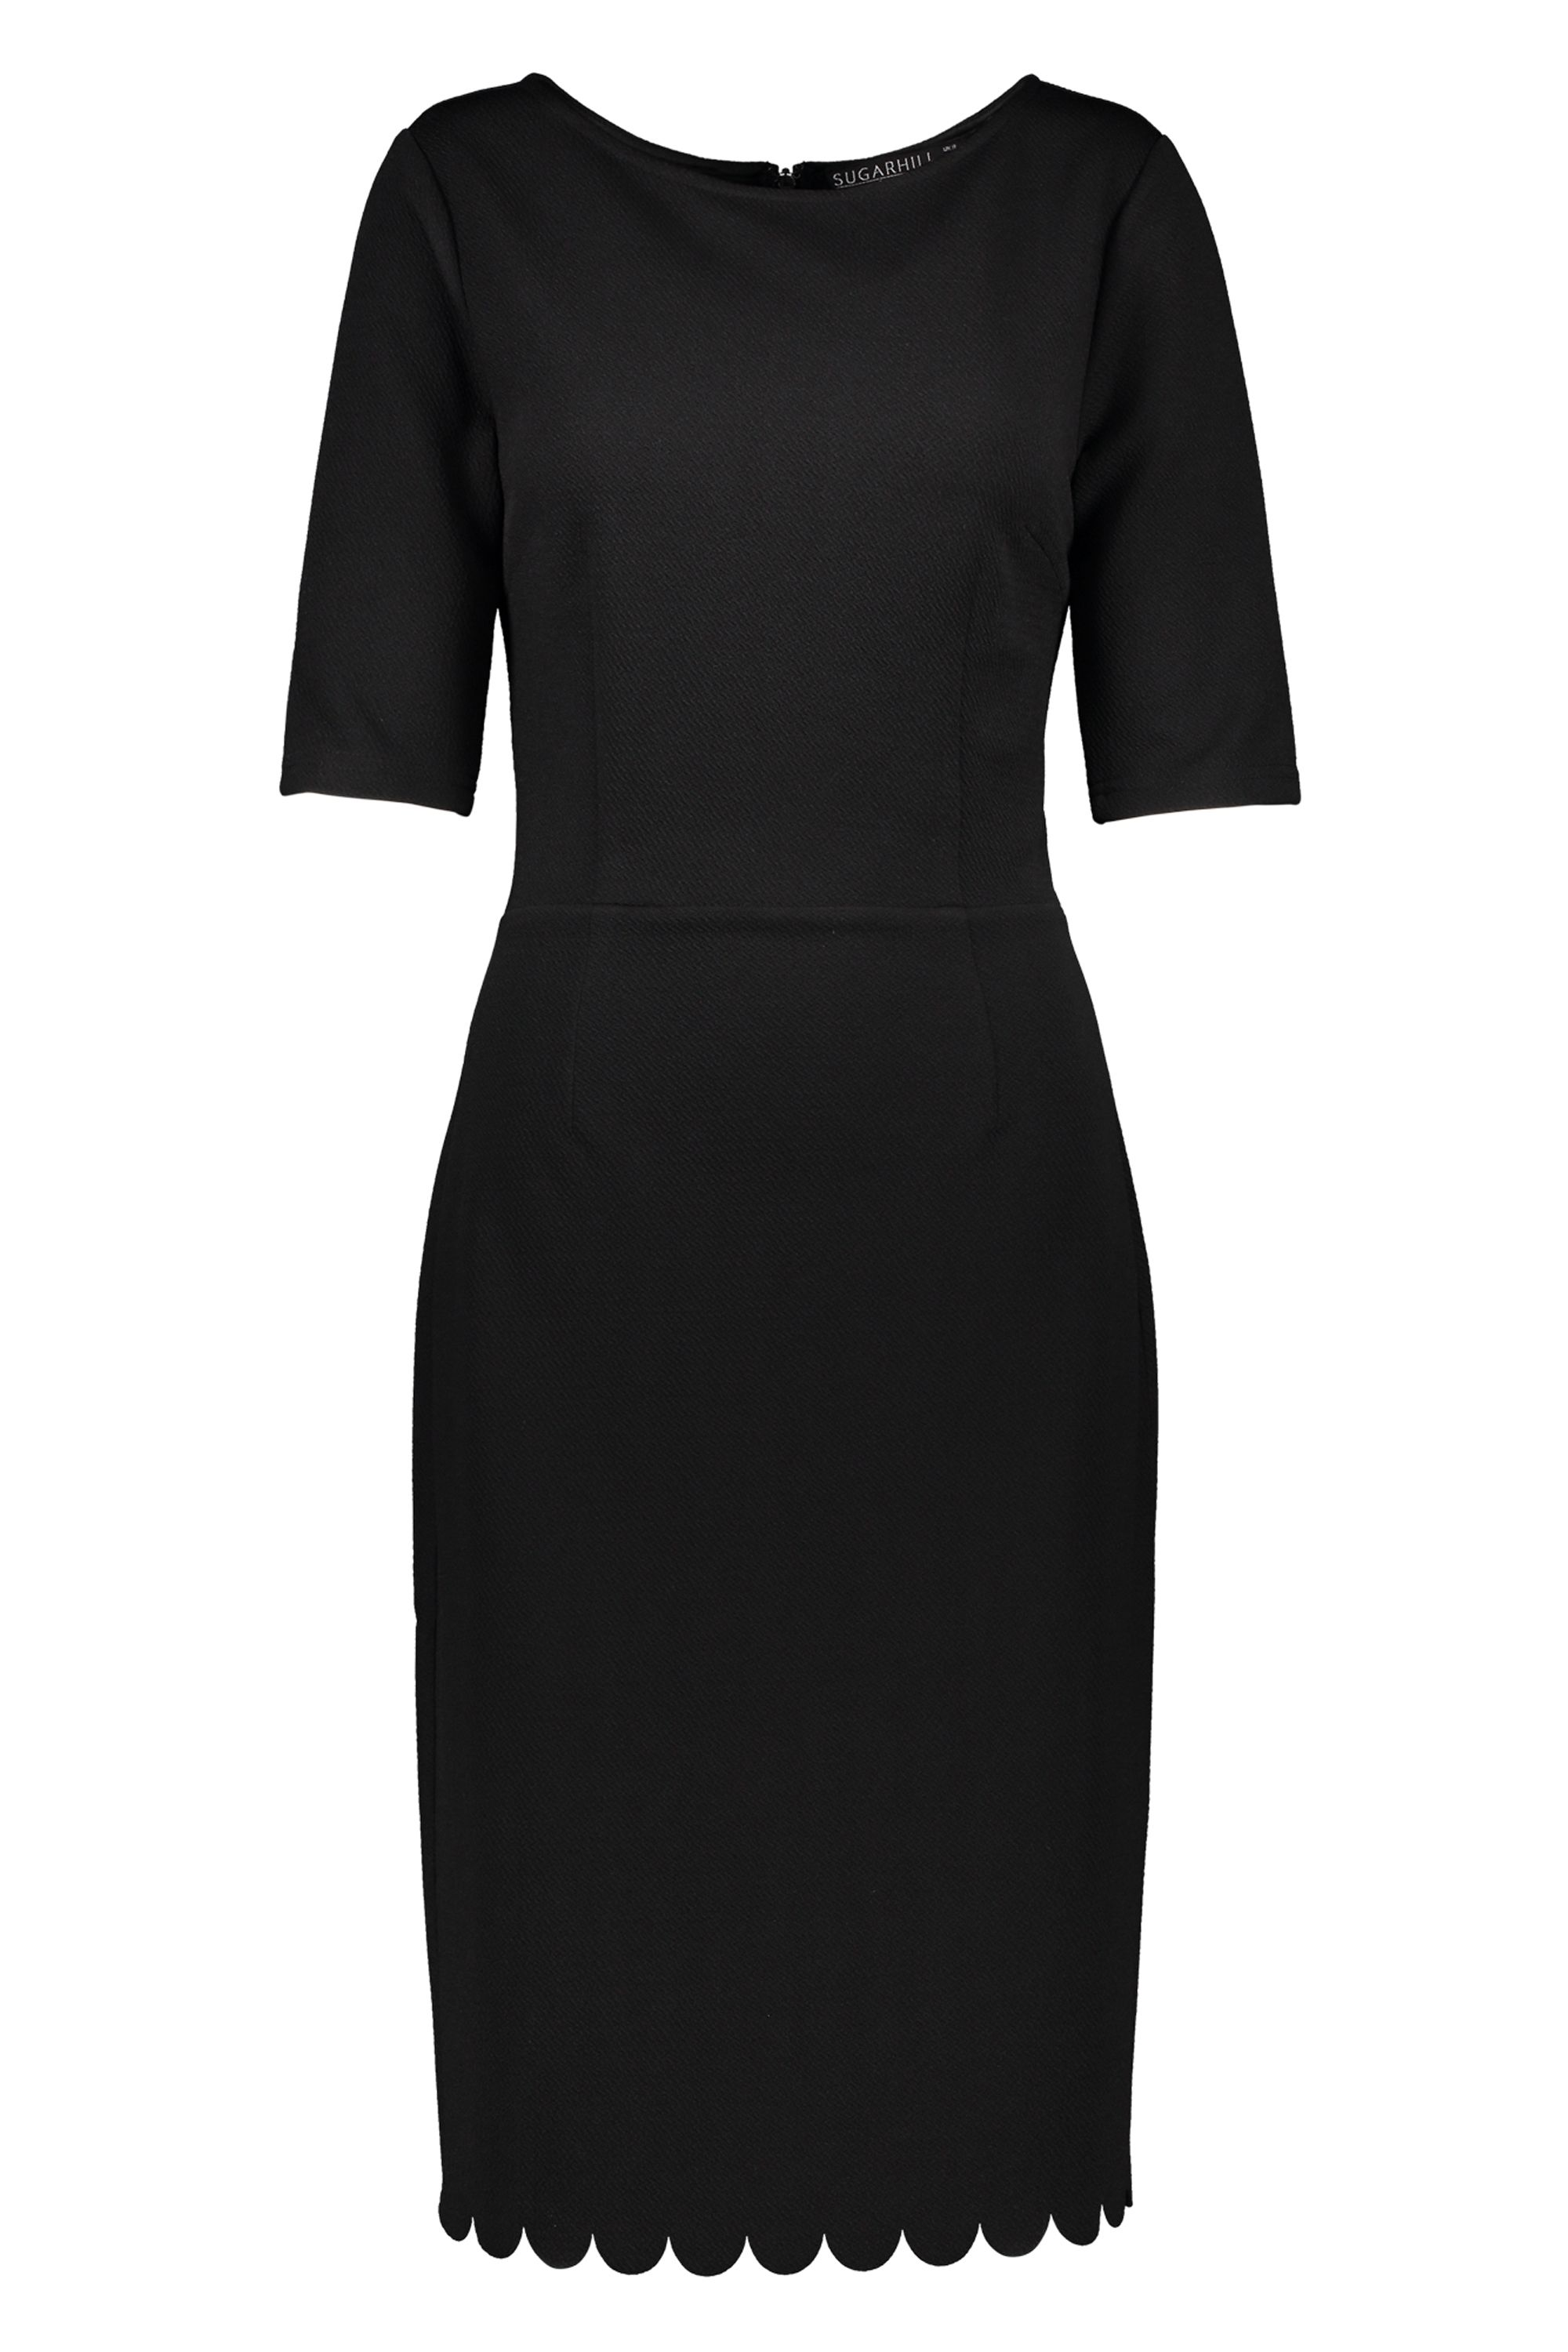 Sugarhill Boutique Albury Black Ponte Dress, Black